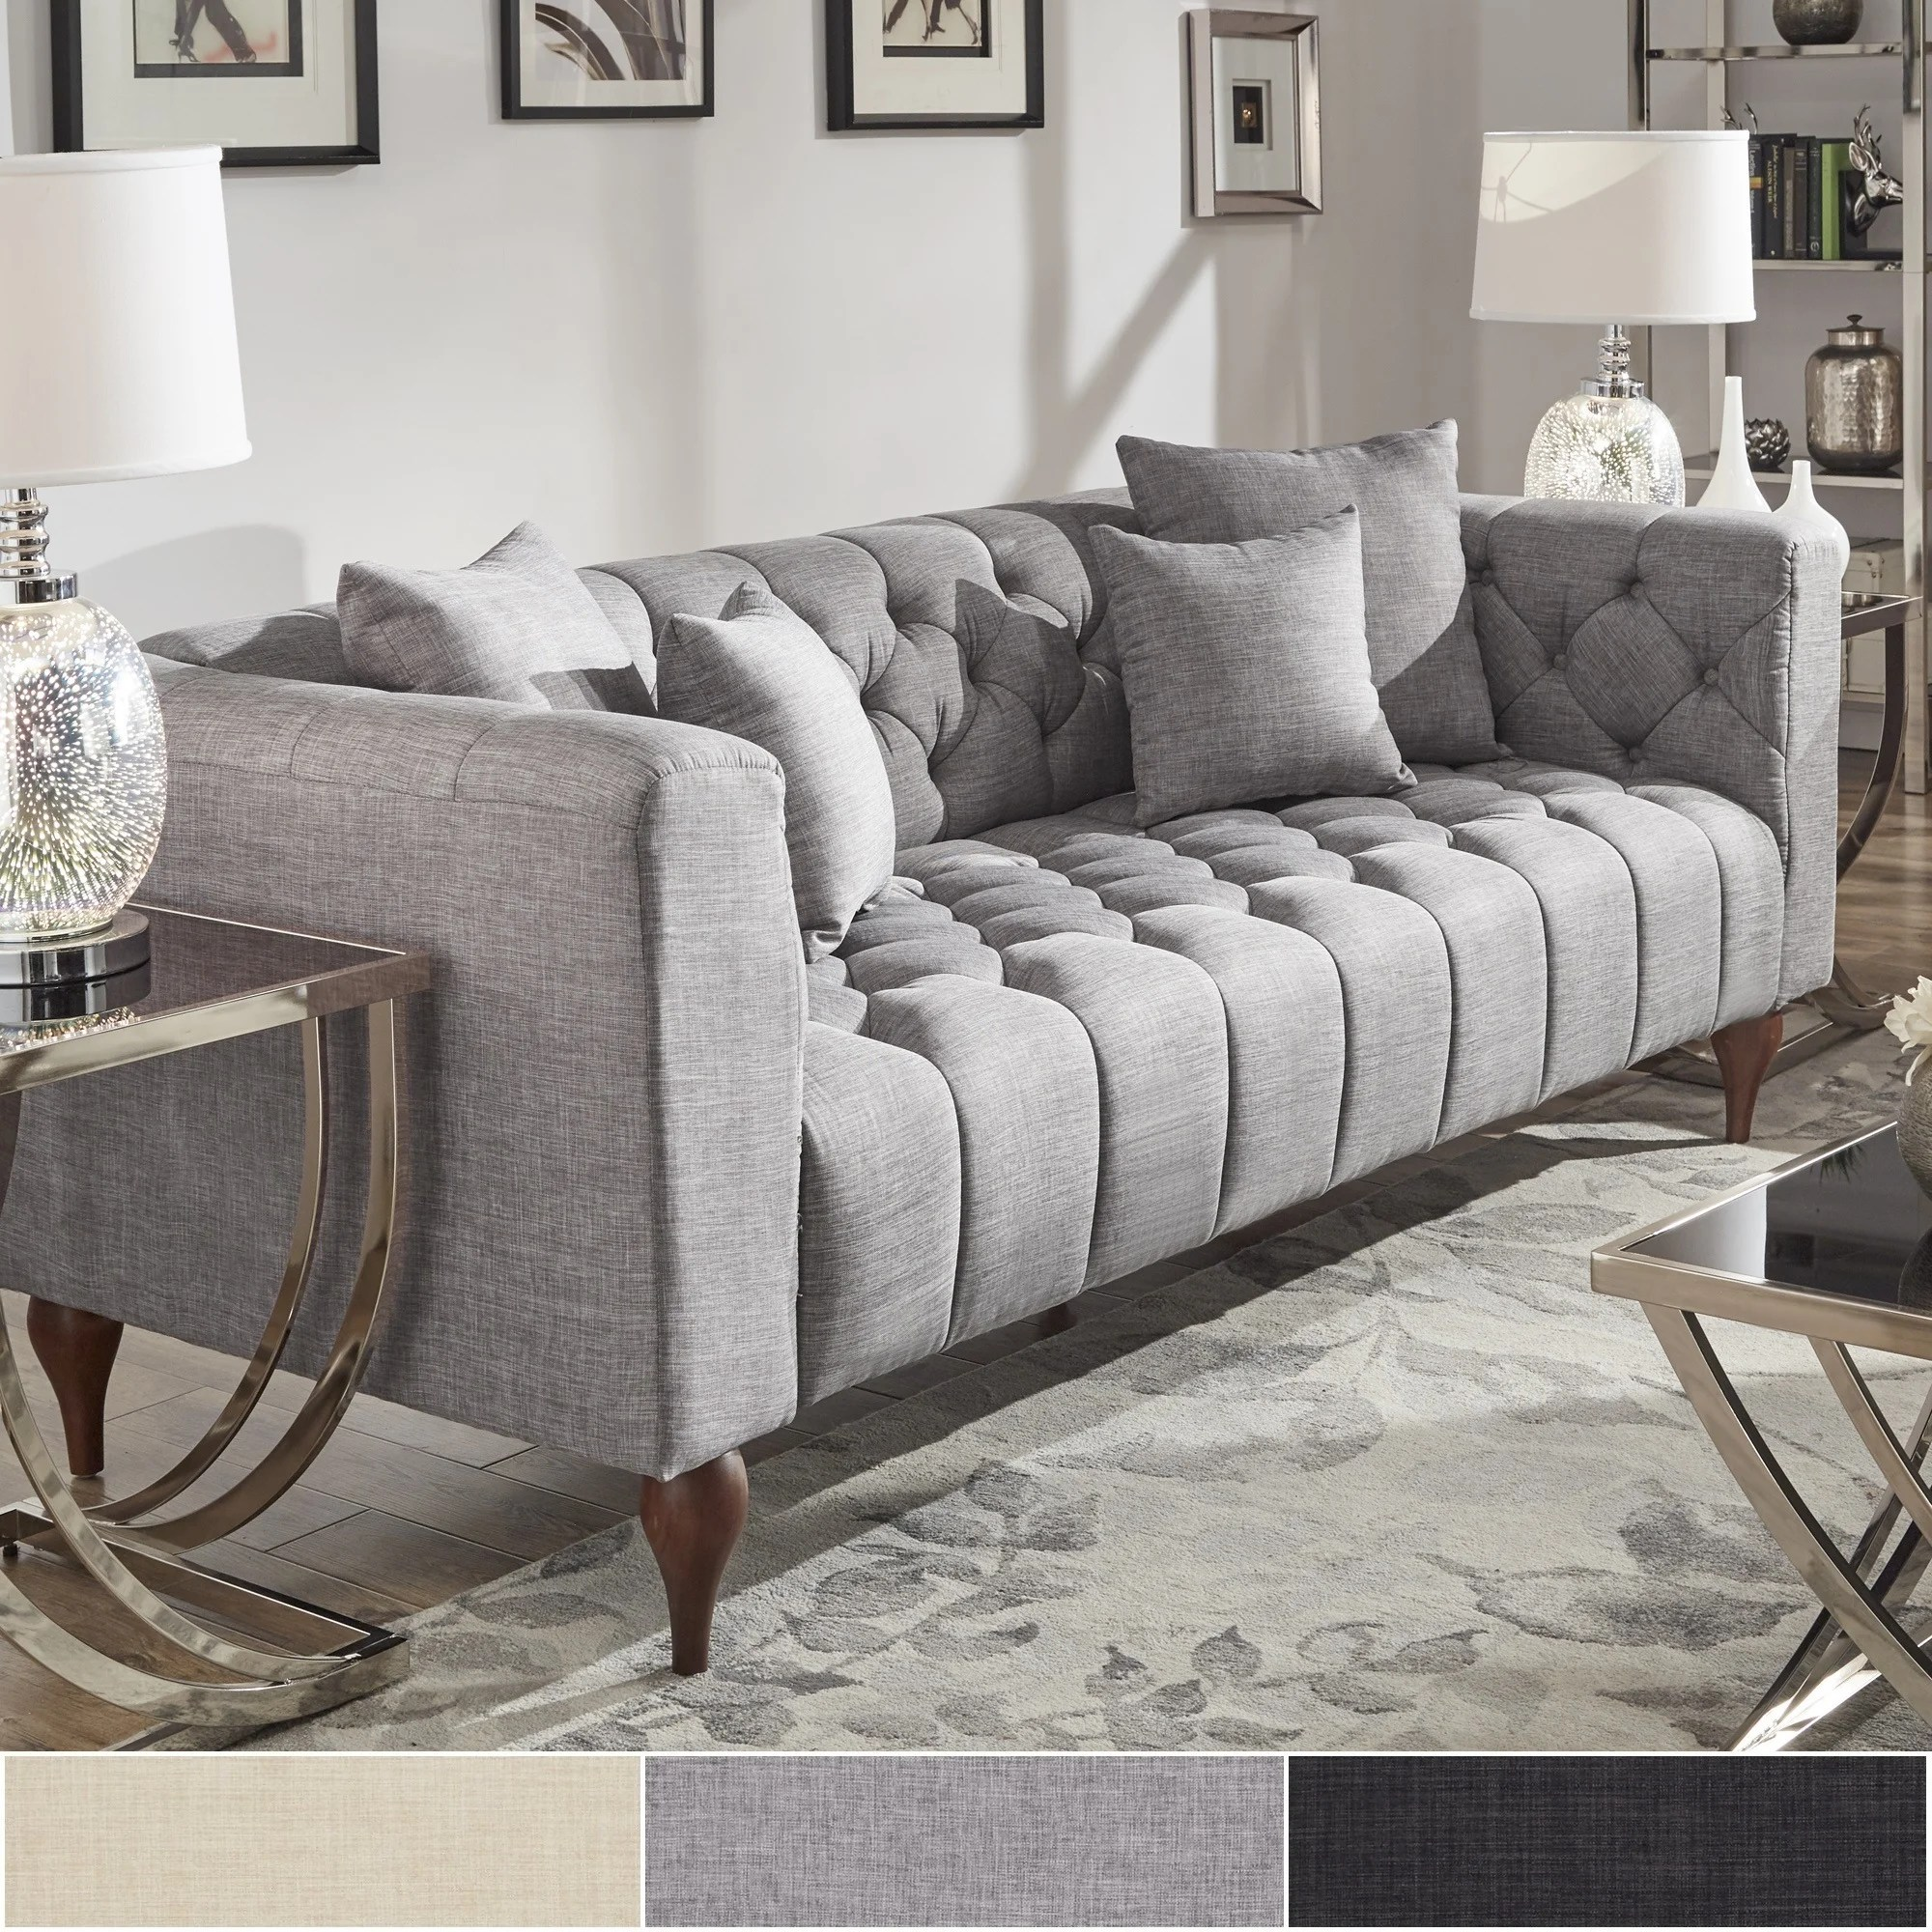 Couch Upholstery Fourways Danise Tufted Linen Upholstered Tuxedo Arm Sofa By Inspire Q Artisan